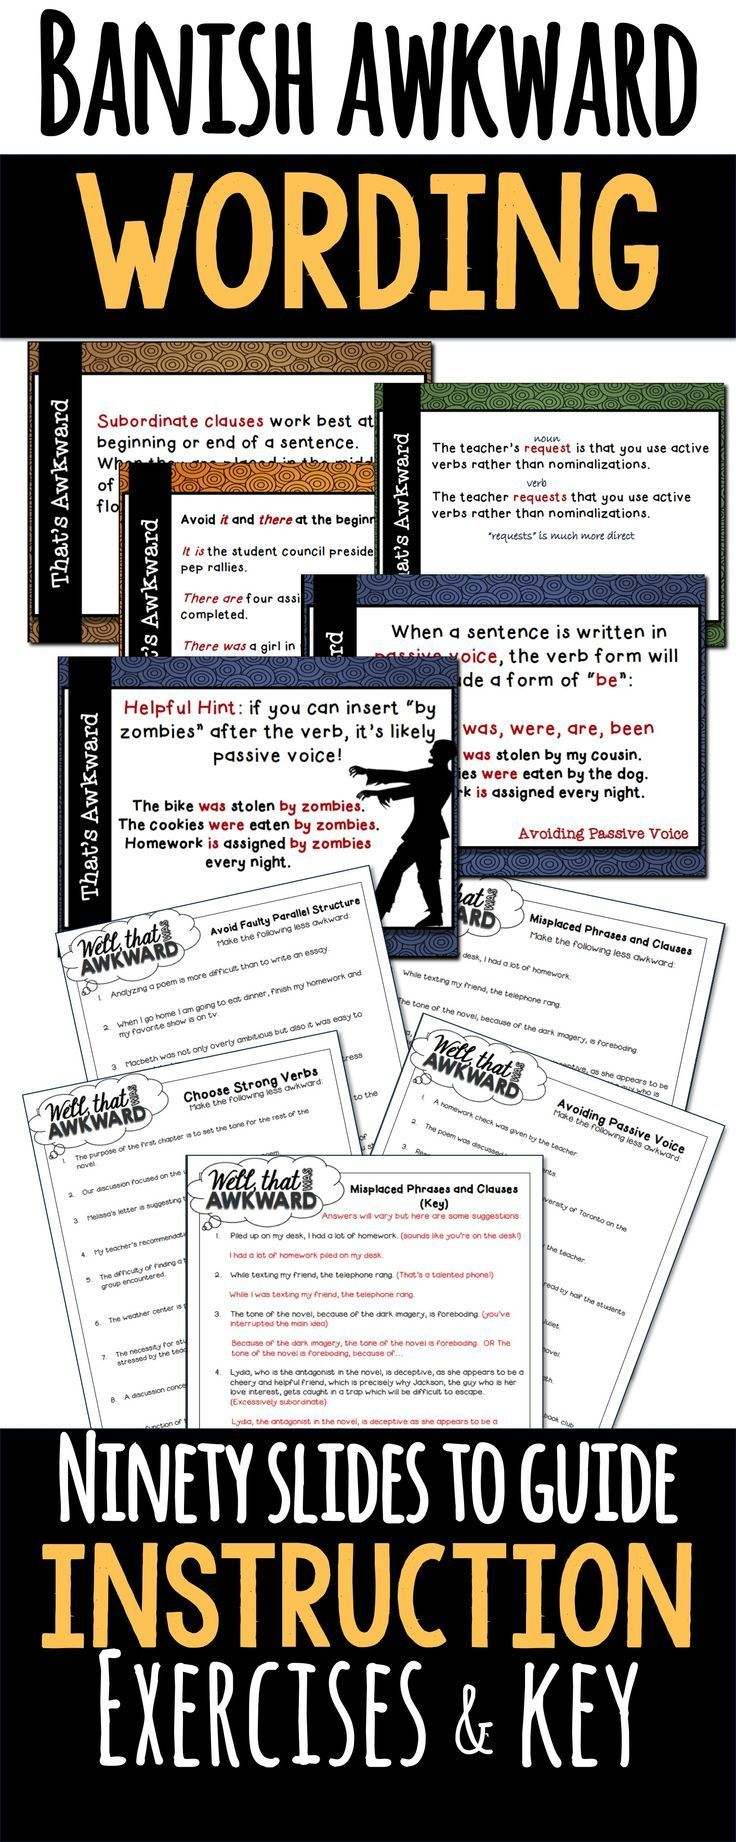 Awkward Wording Help Your Students Write Strong, Clear